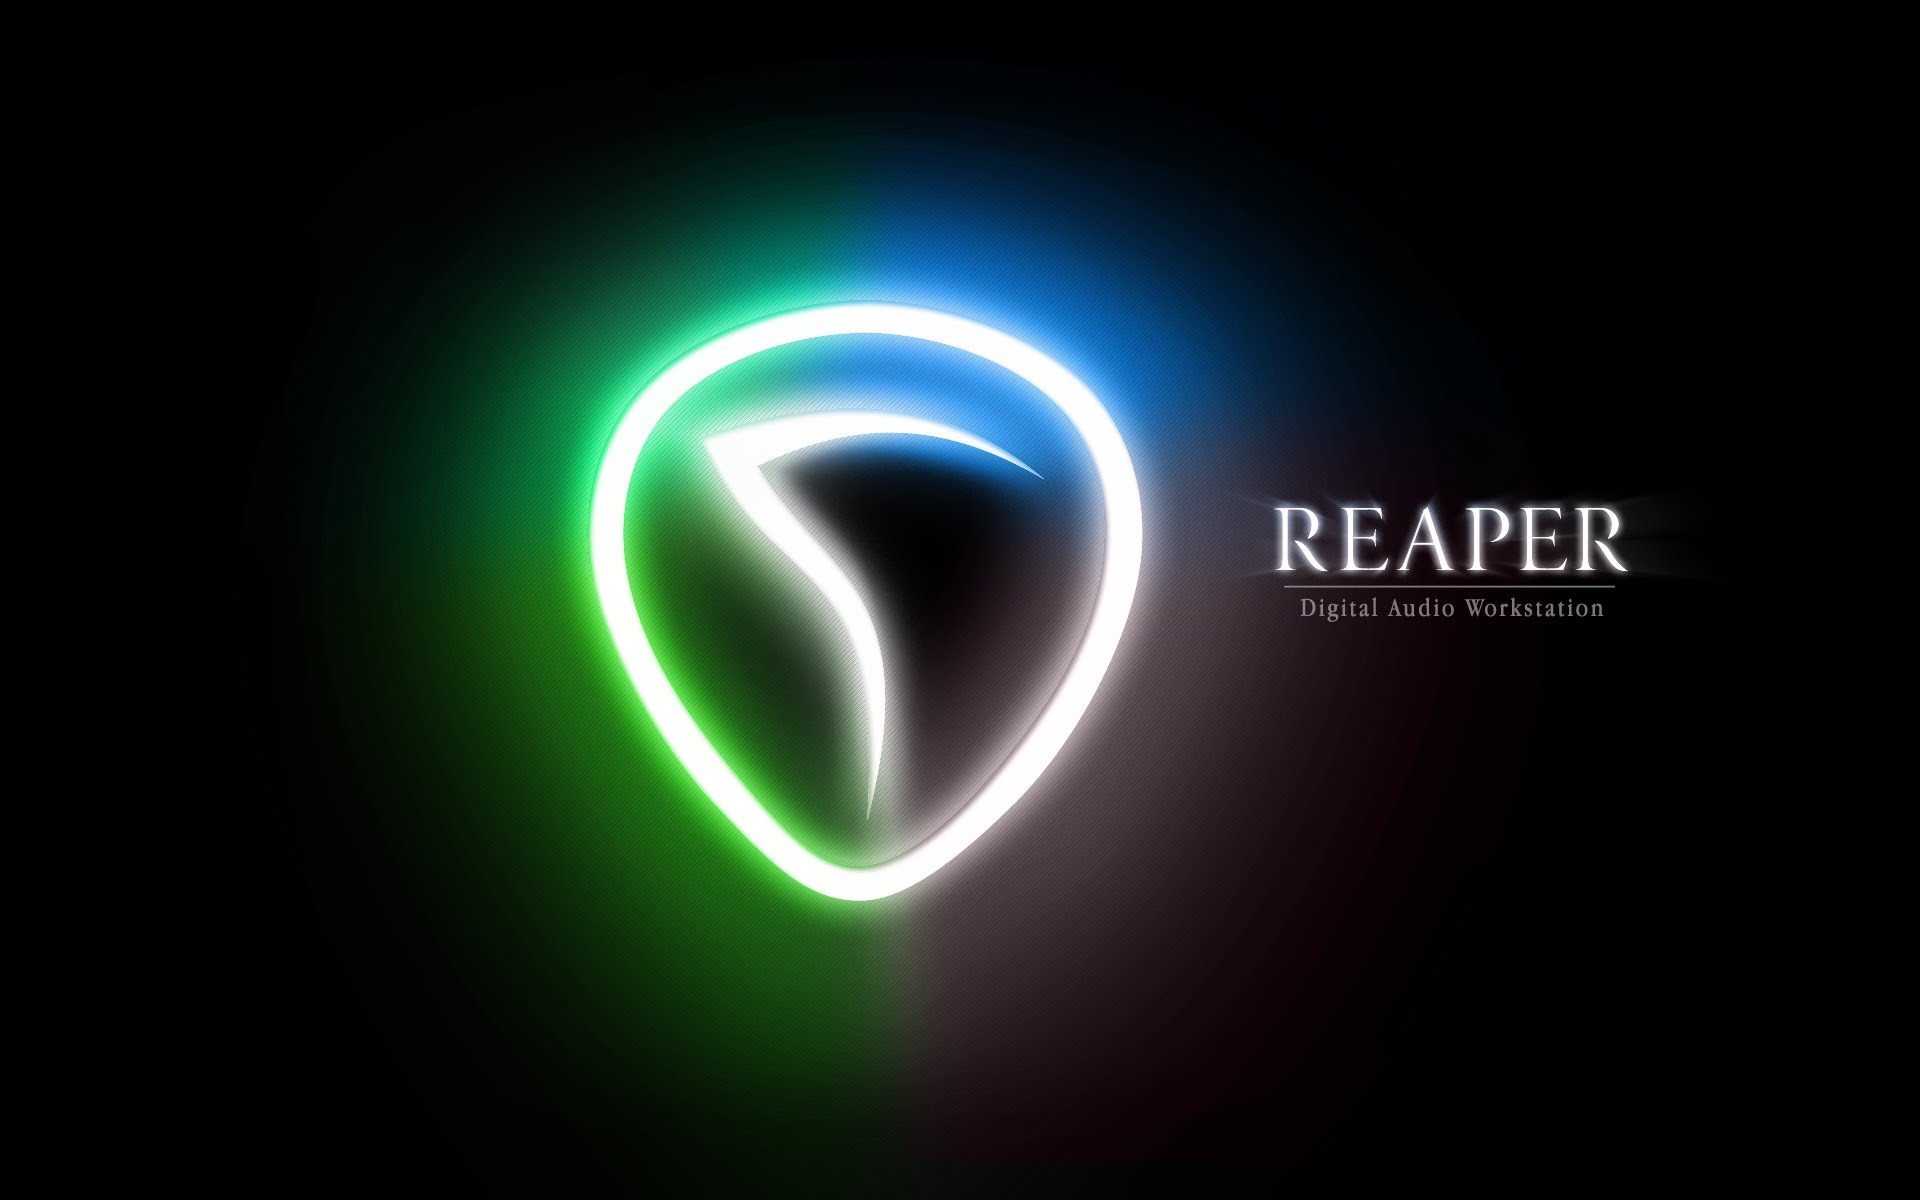 reaper-digital-audio-workstation